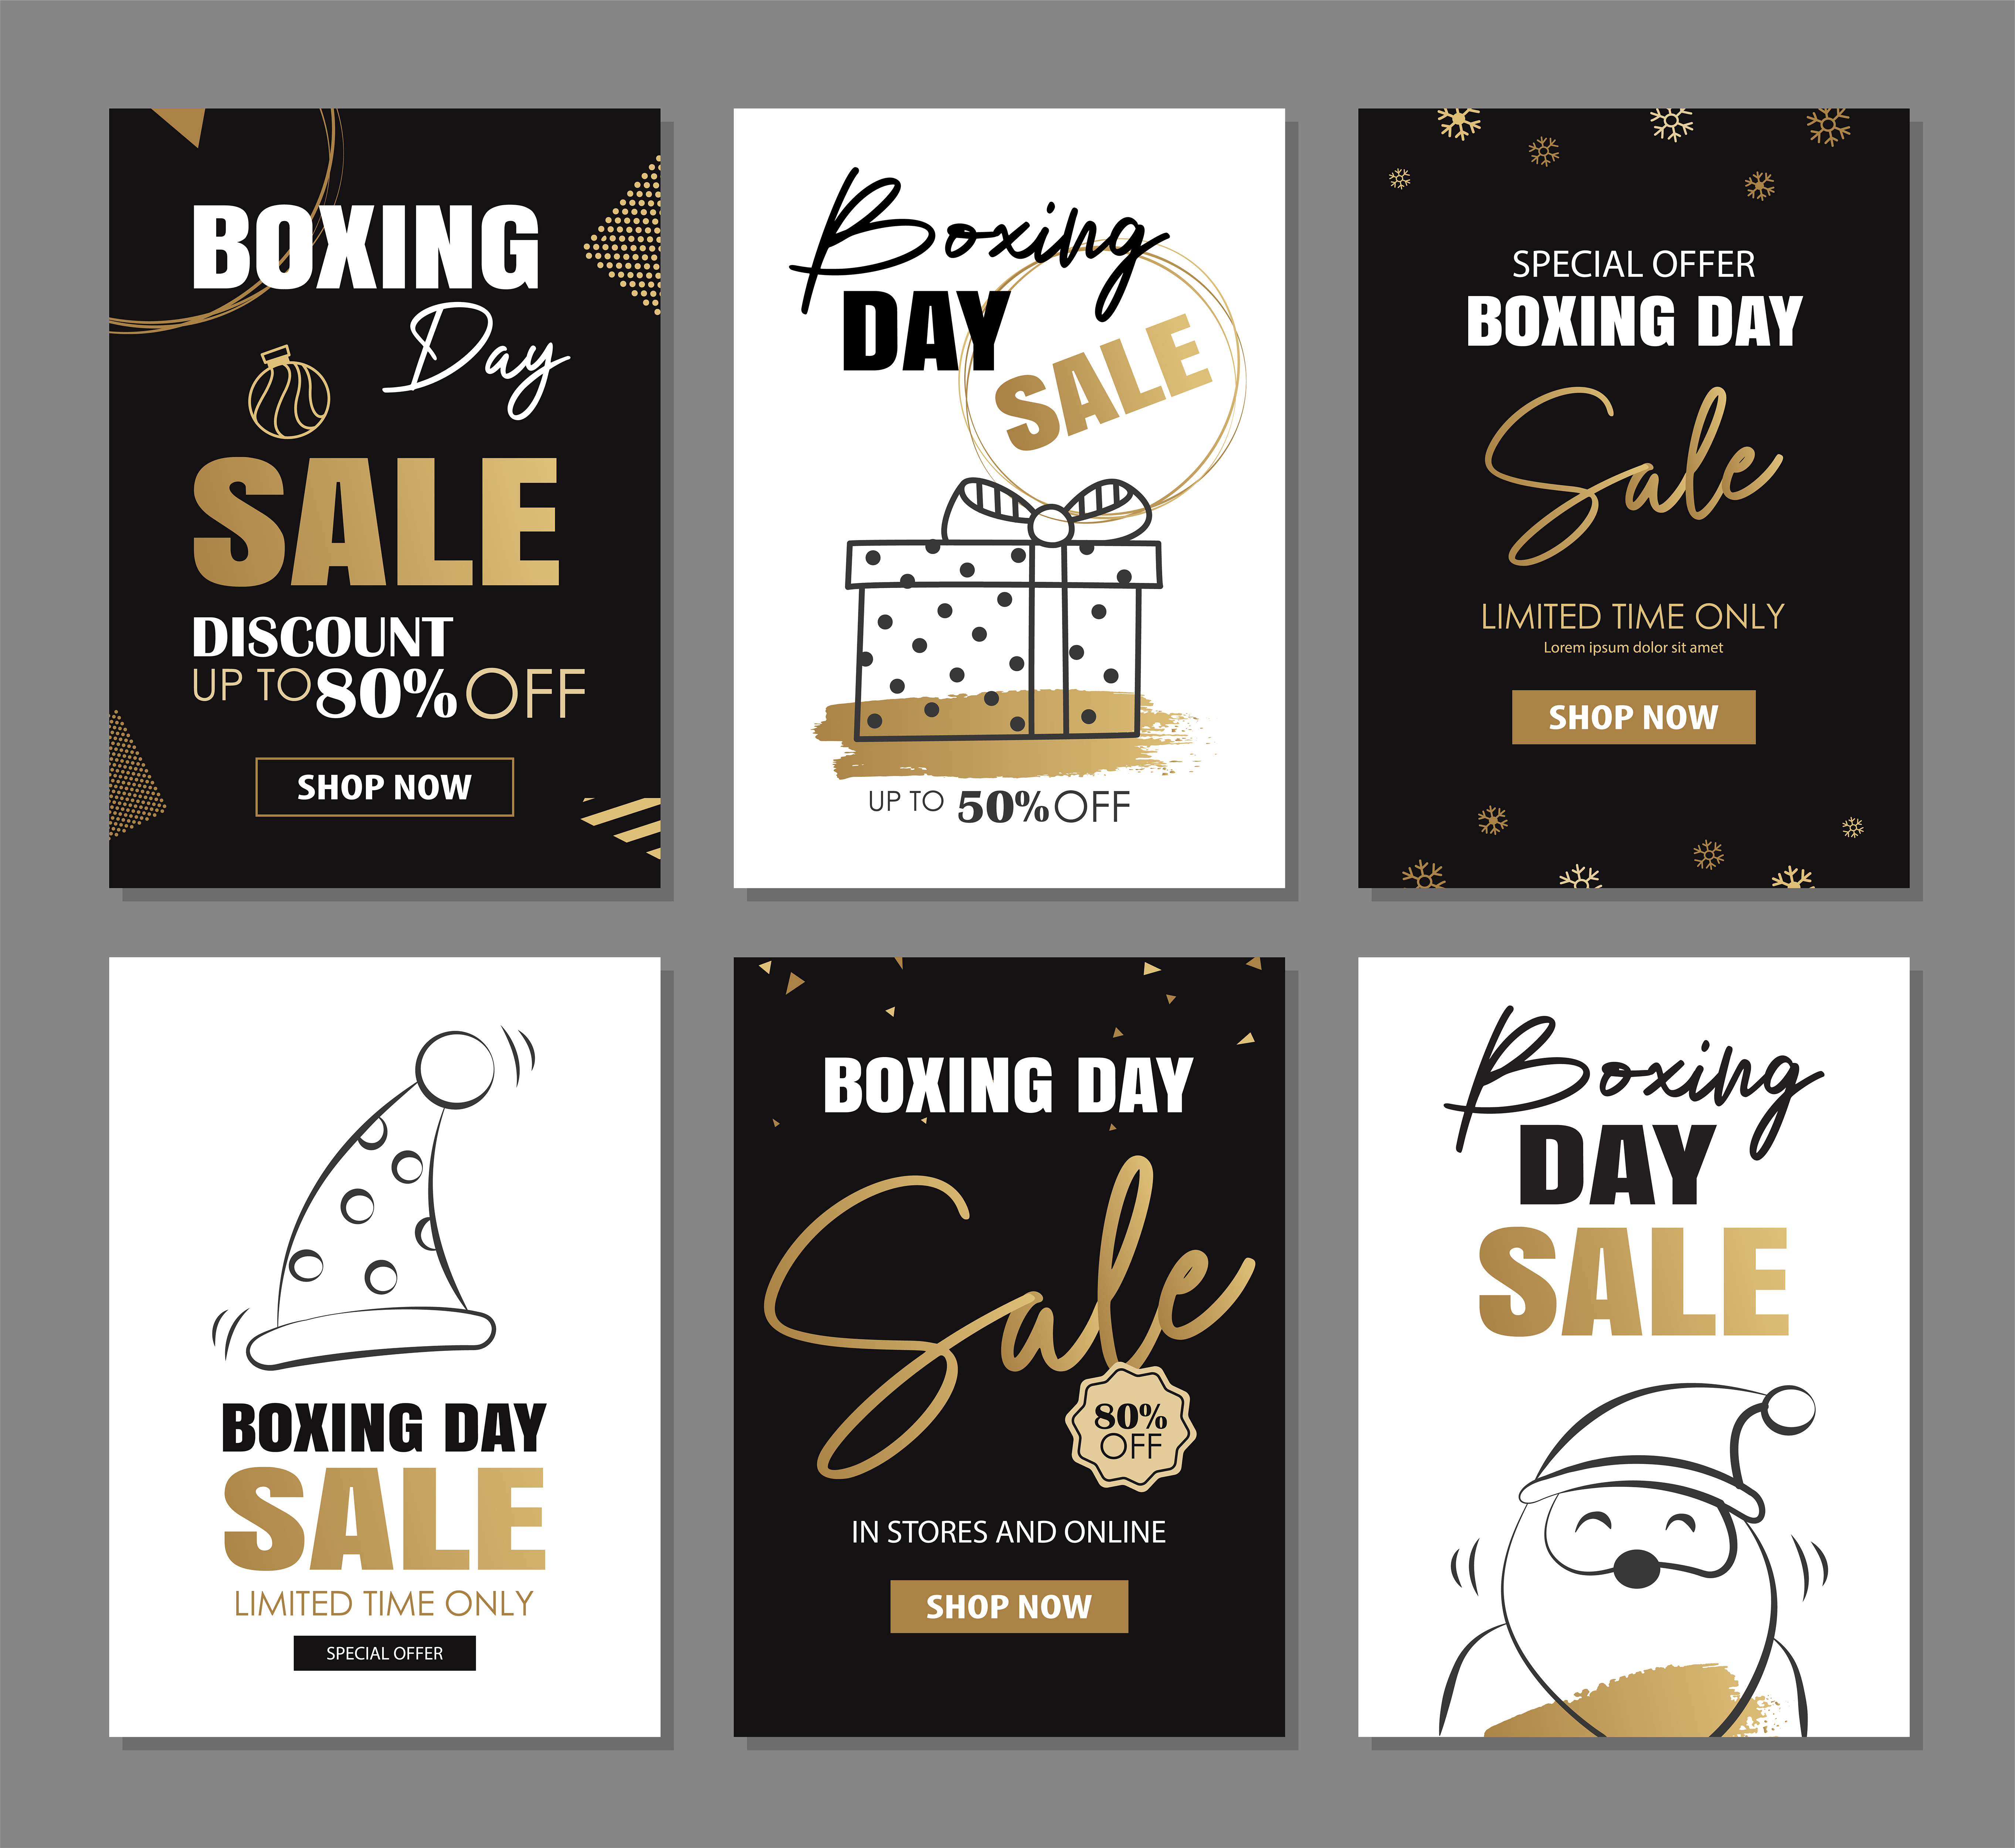 boxing day sale banner design with gold luxury decoration templates 1858448 download free vectors clipart graphics vector art